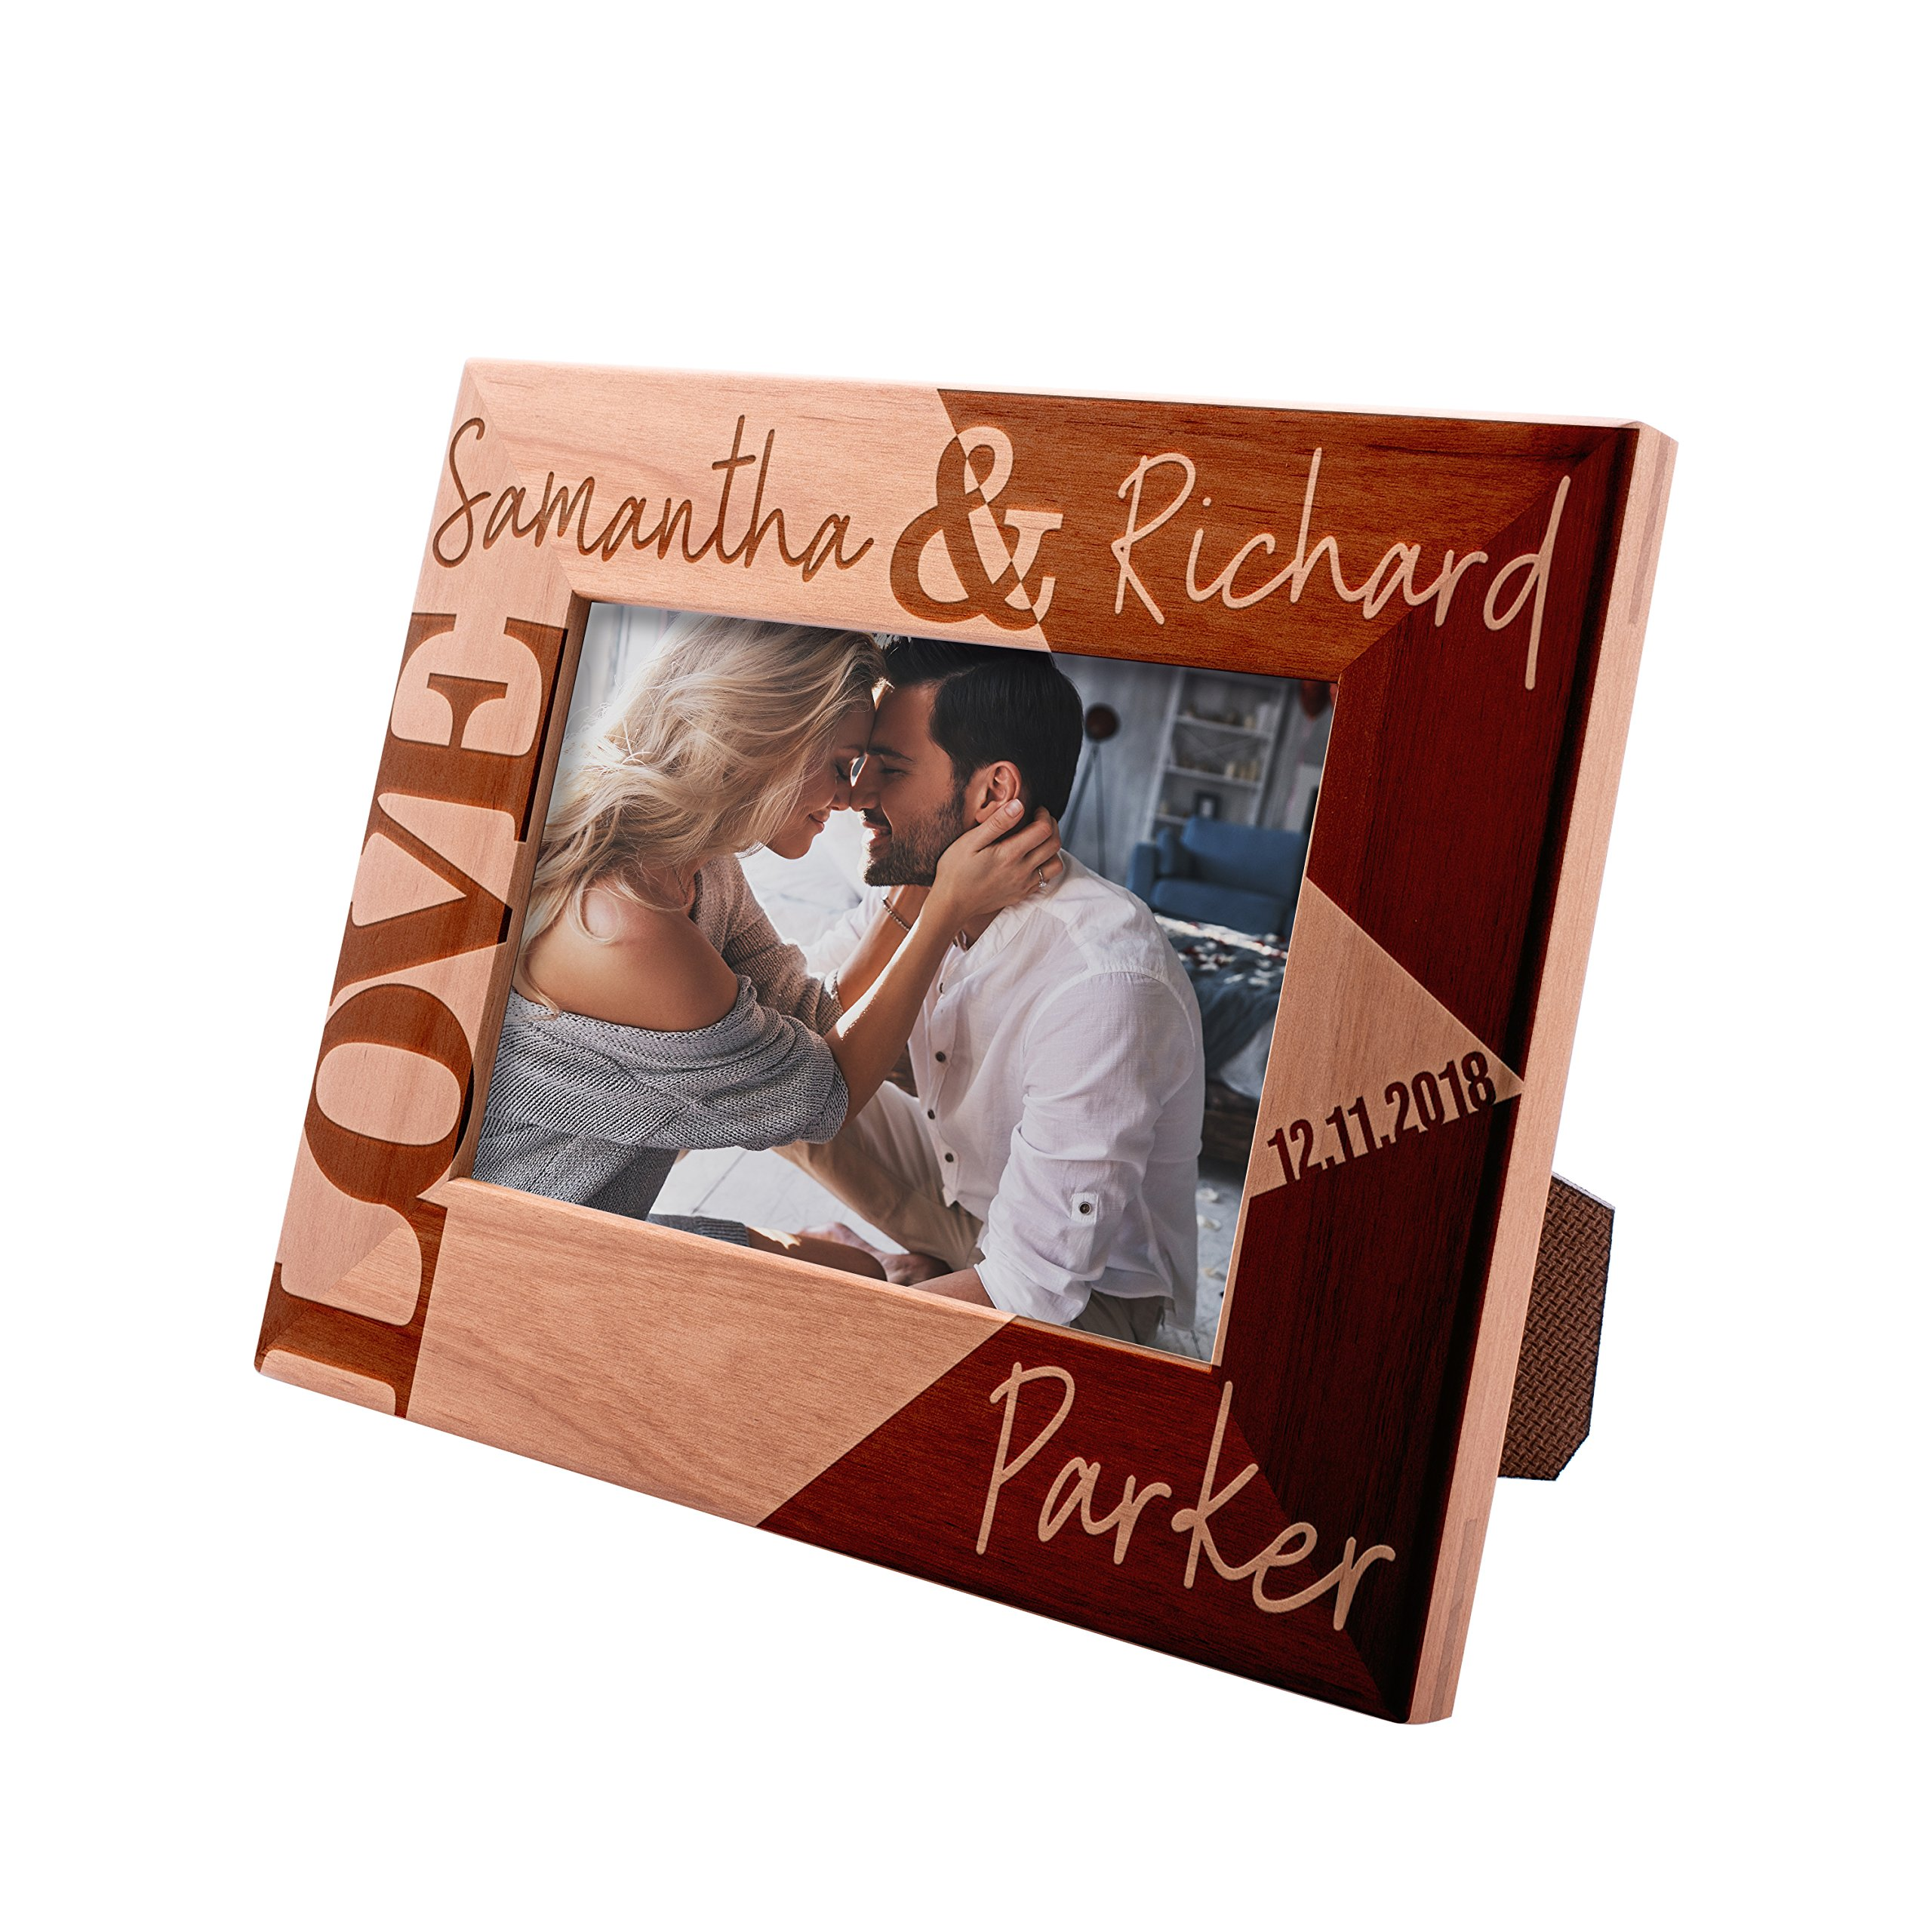 Personalized Picture Frames 4x6, 5x7, 8x10 - Love Personalized Romantic, Wedding Photo Frame, Engagement, Valentine's Day, Wedding Gifts for The Couple by Personalization Lab